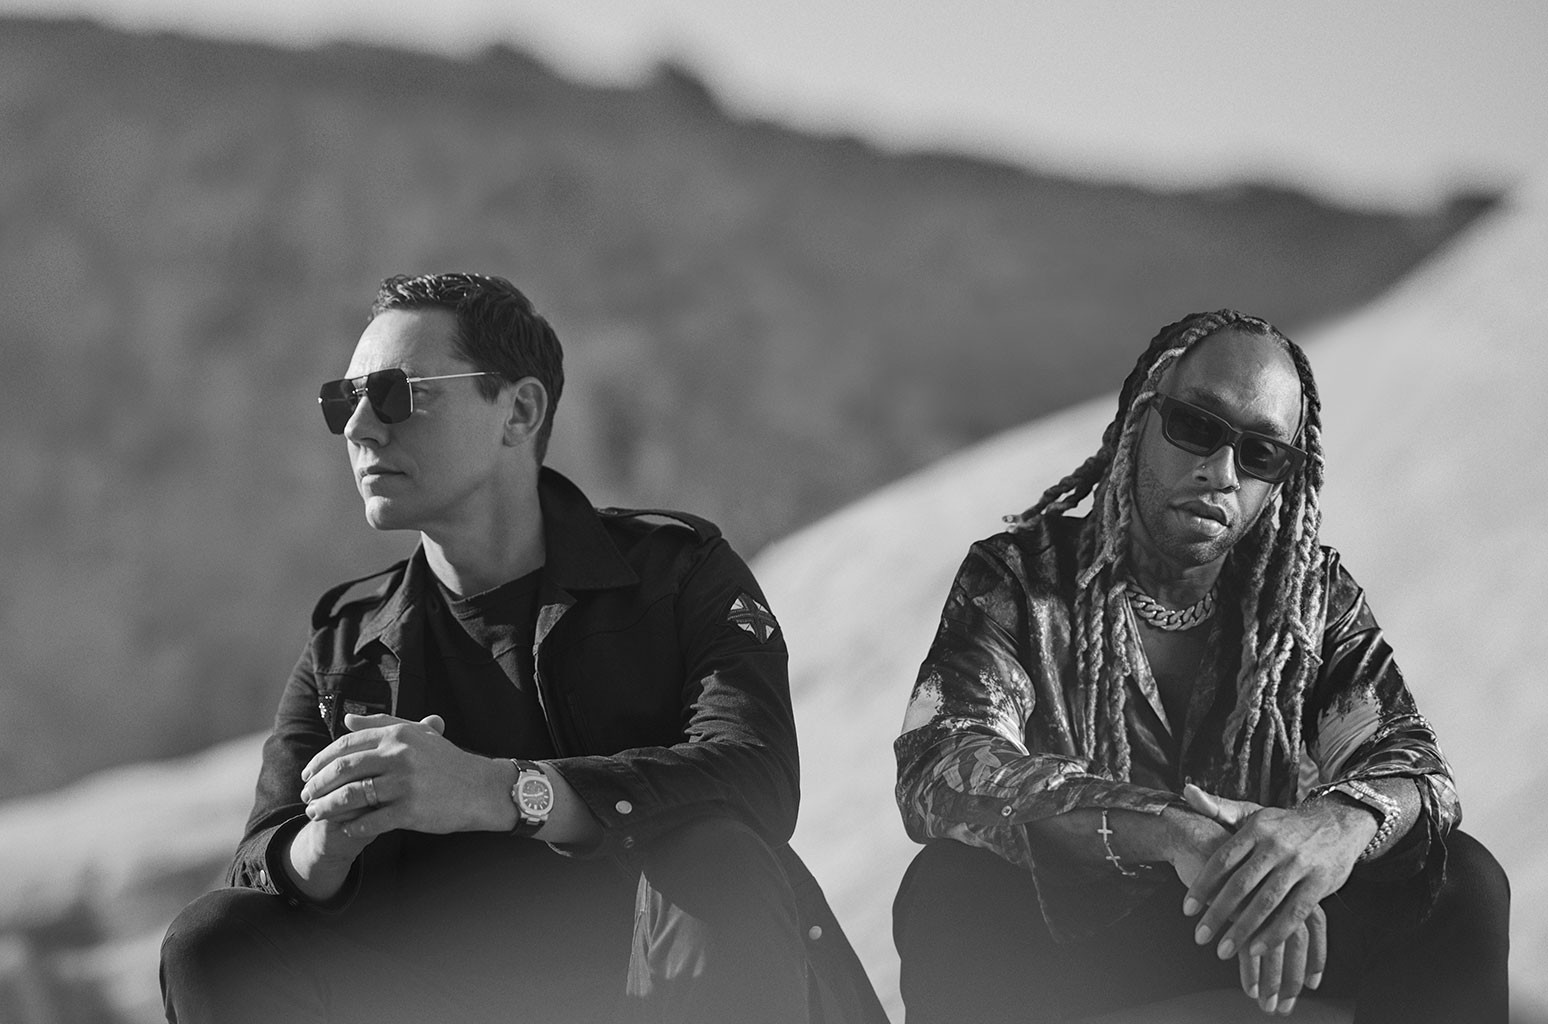 Tiësto and Ty Dolla $ign